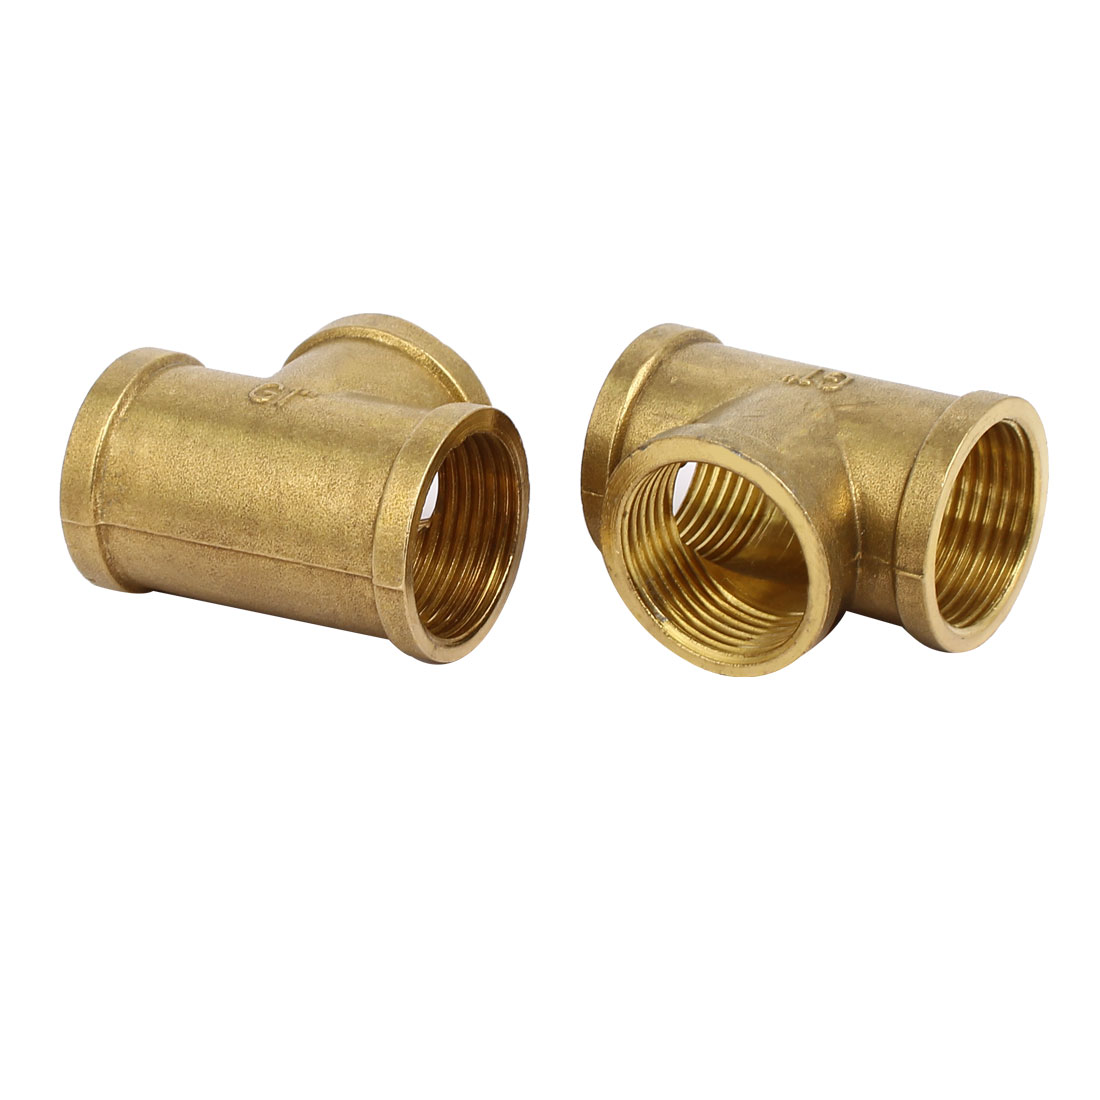 1BSP Female Thread Brass T Shape Tube Pipe Connecting Fittings Connectors 2pcs